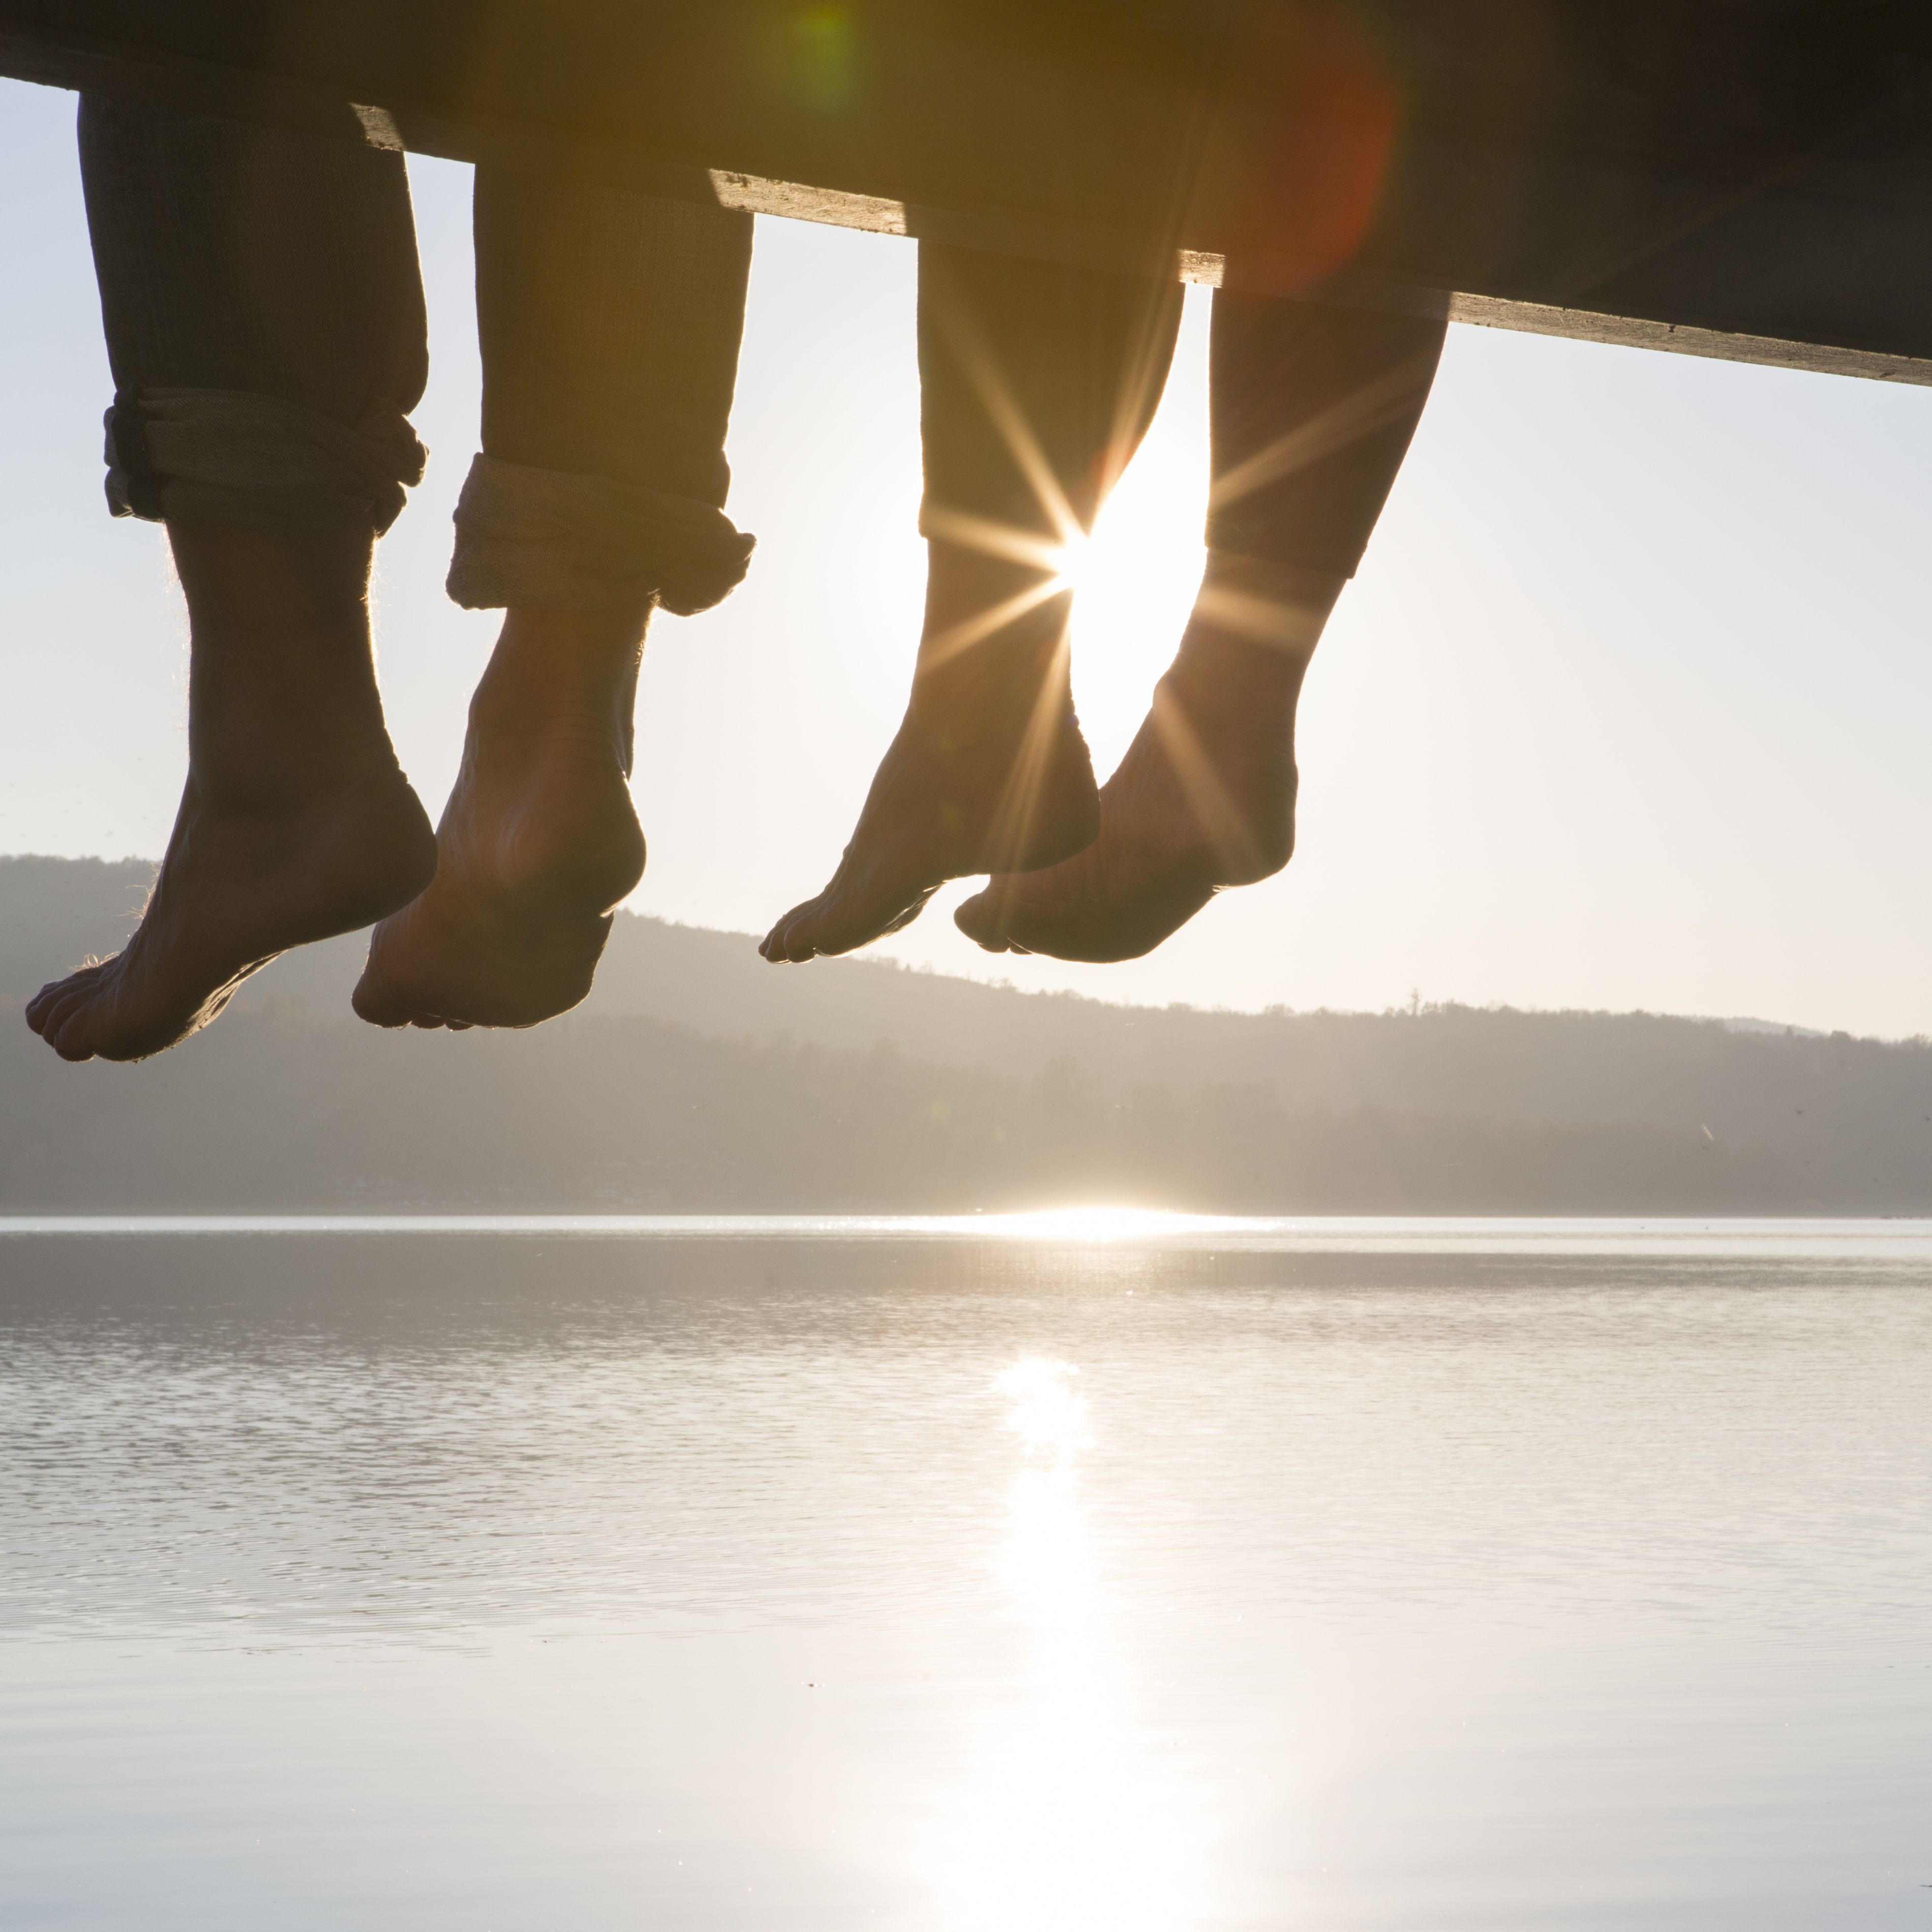 How Aging Affects Your Feet and Ankles